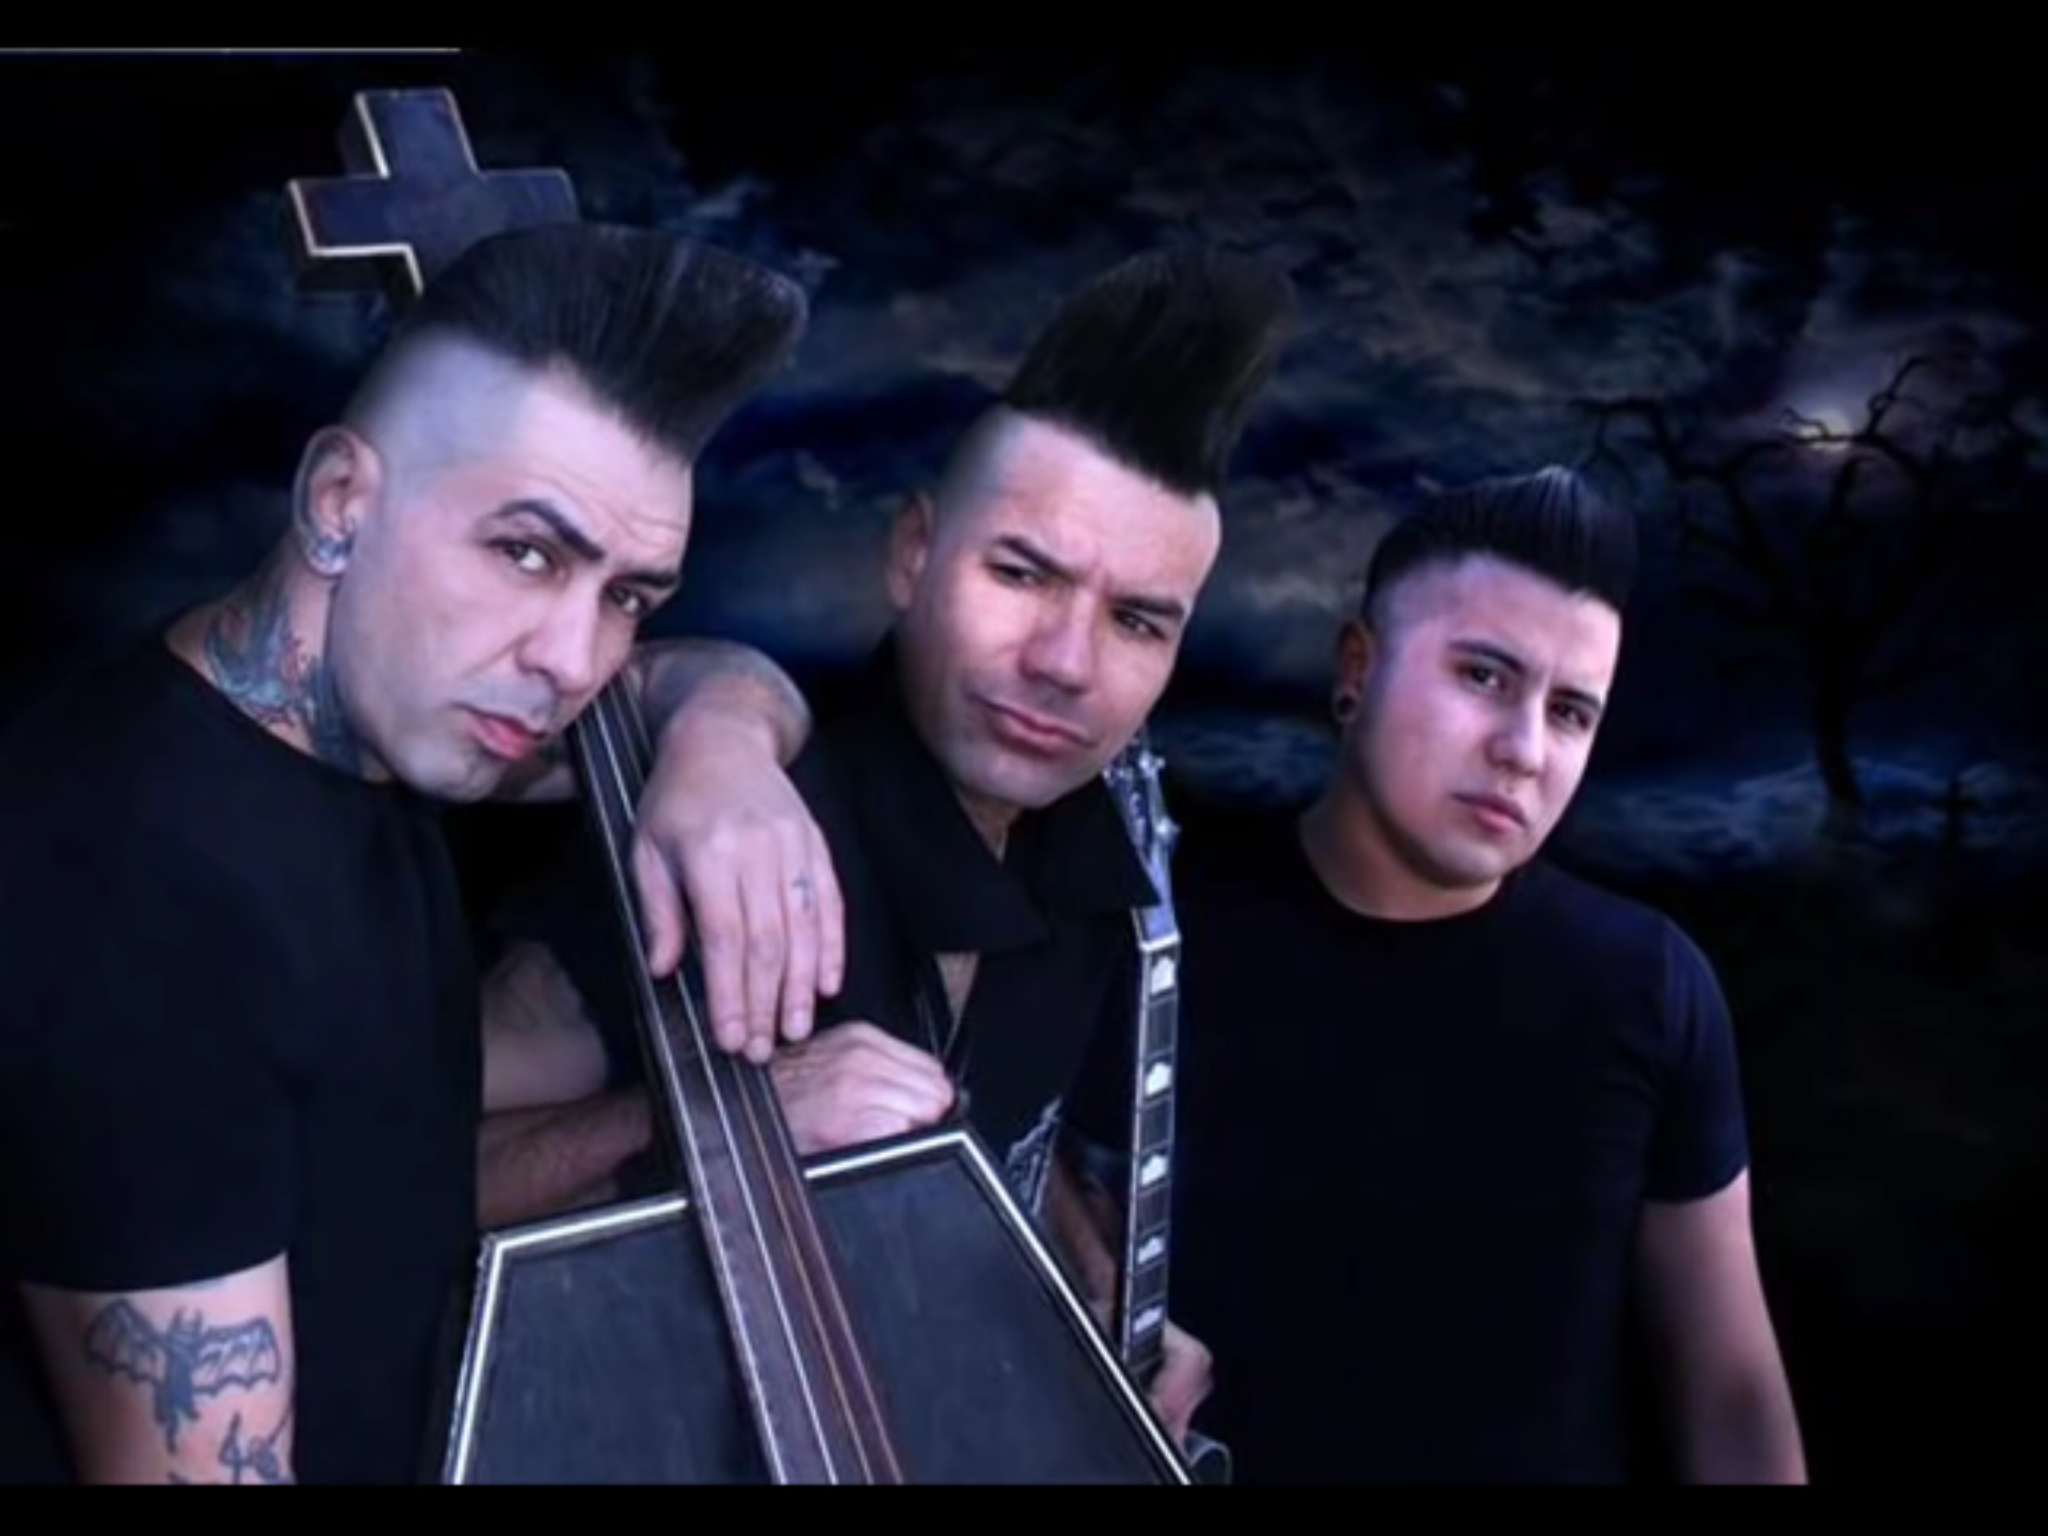 Pin by Beandip1 on Bands | Psychobilly bands, Psychobilly